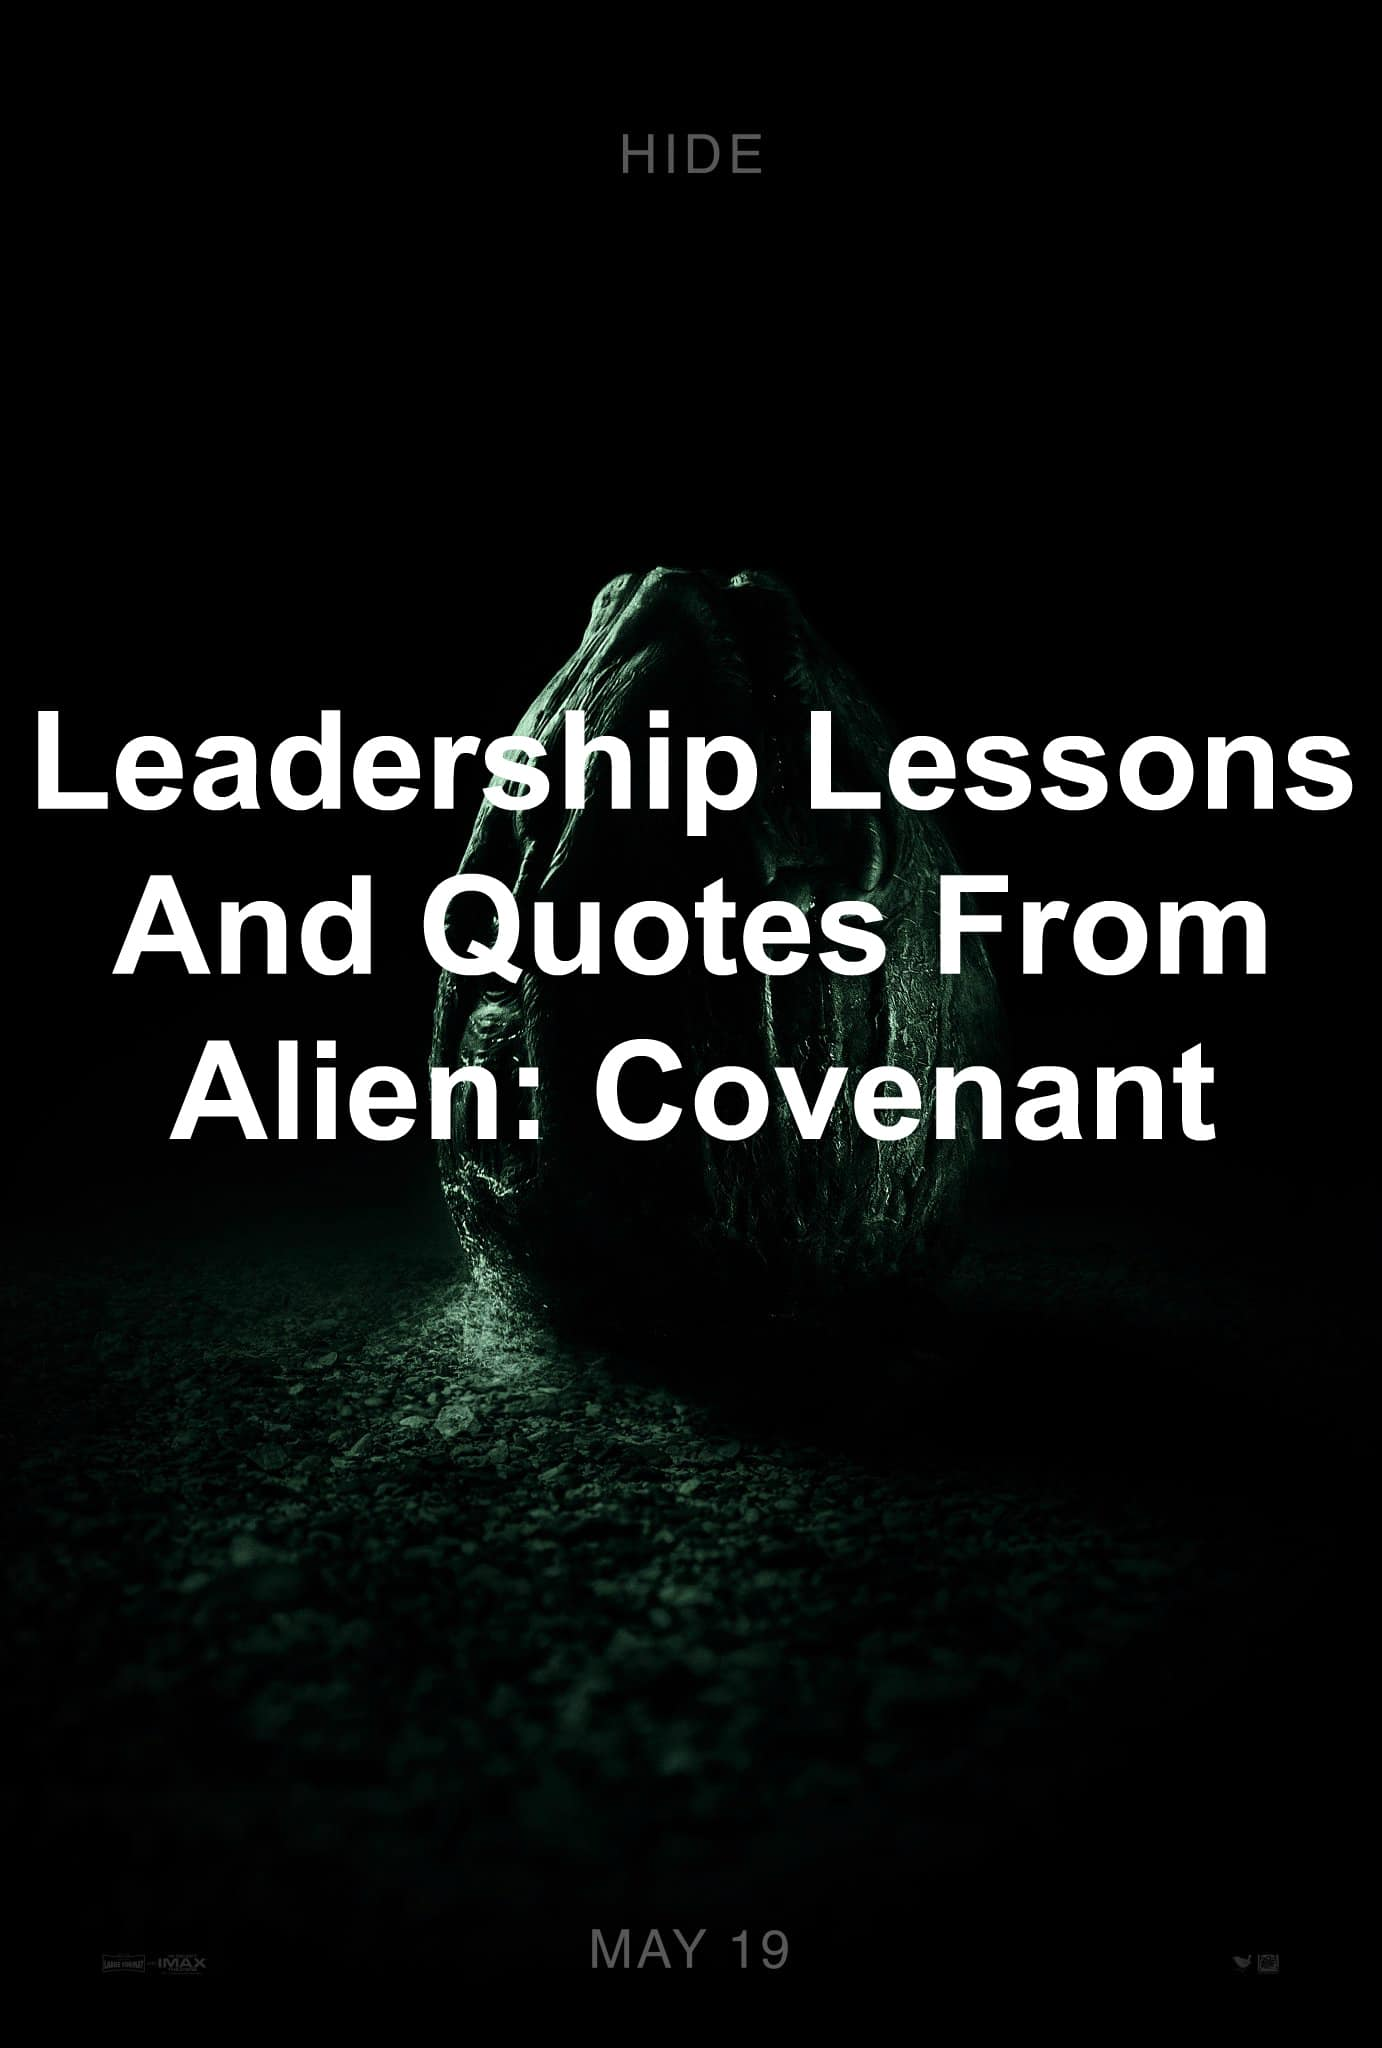 Leadership lessons and quotes from Alien: Covenant